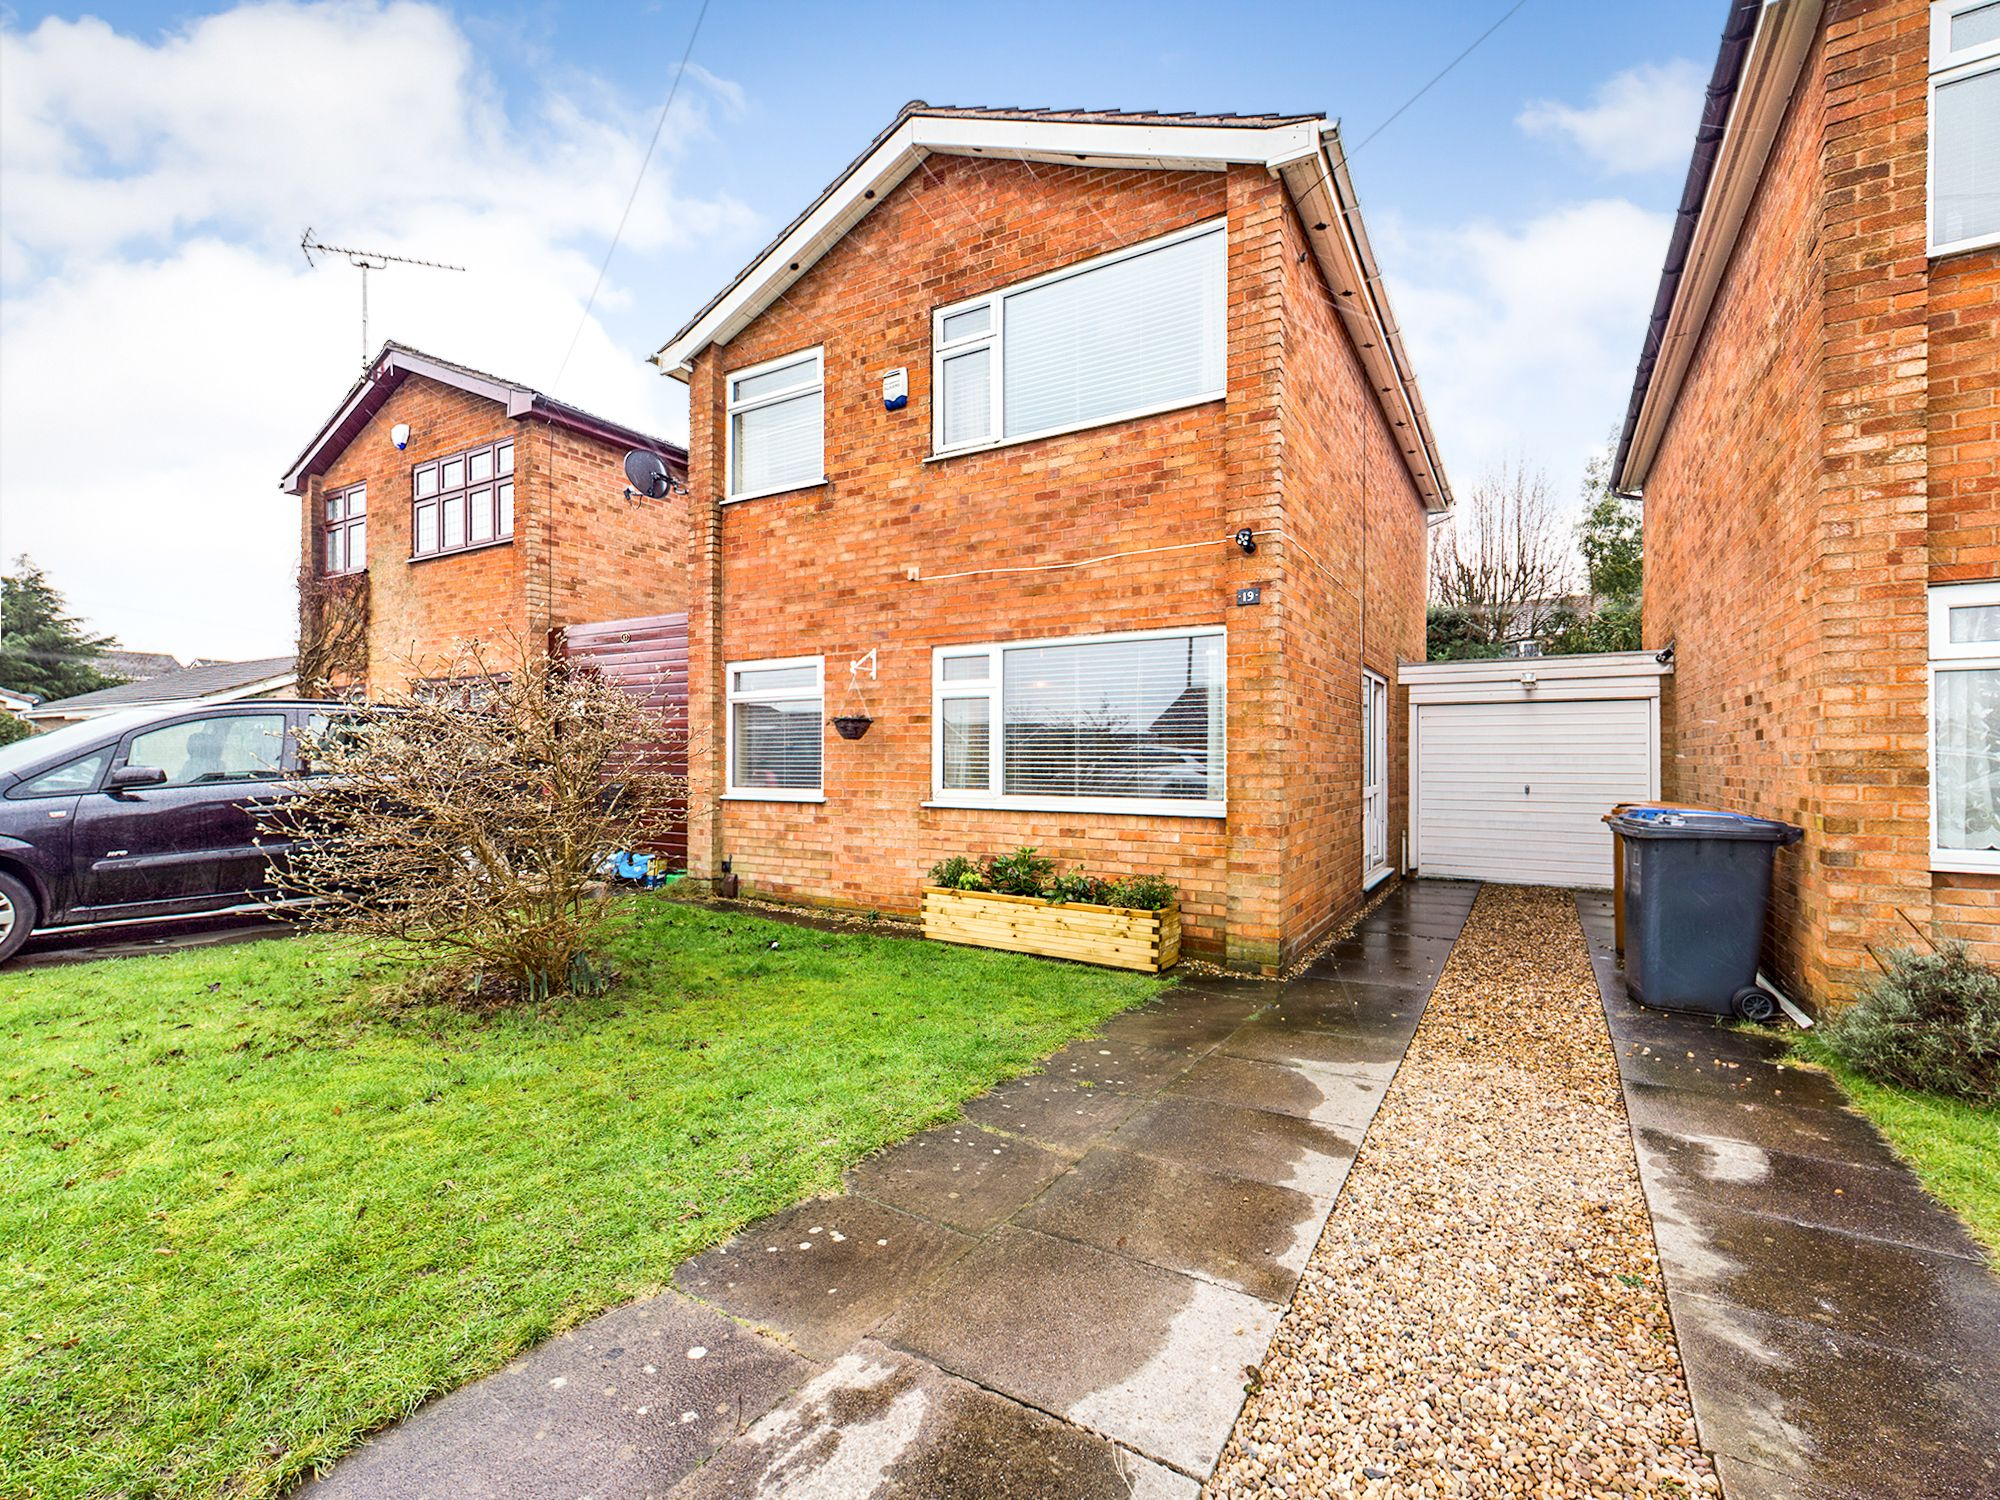 3 bed detached house for sale in Azalea Close, Burbage, LE10, Hinckley  - Property Image 1